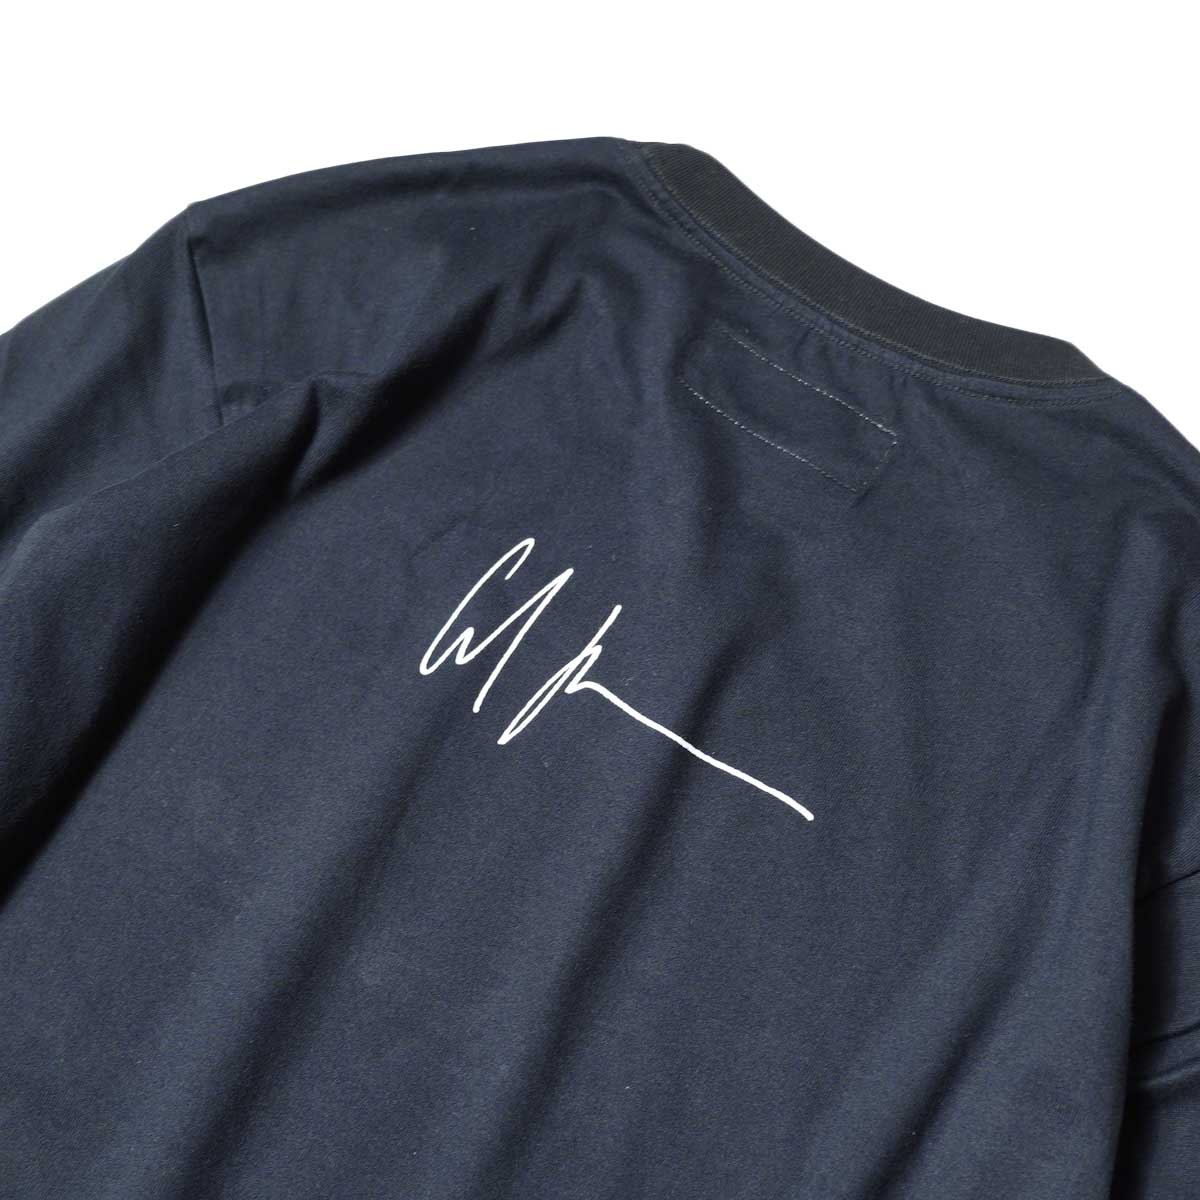 JANE SMITH / CADILLAC PLYMOUTH L/S T-Shirt (Black) 背面プリント